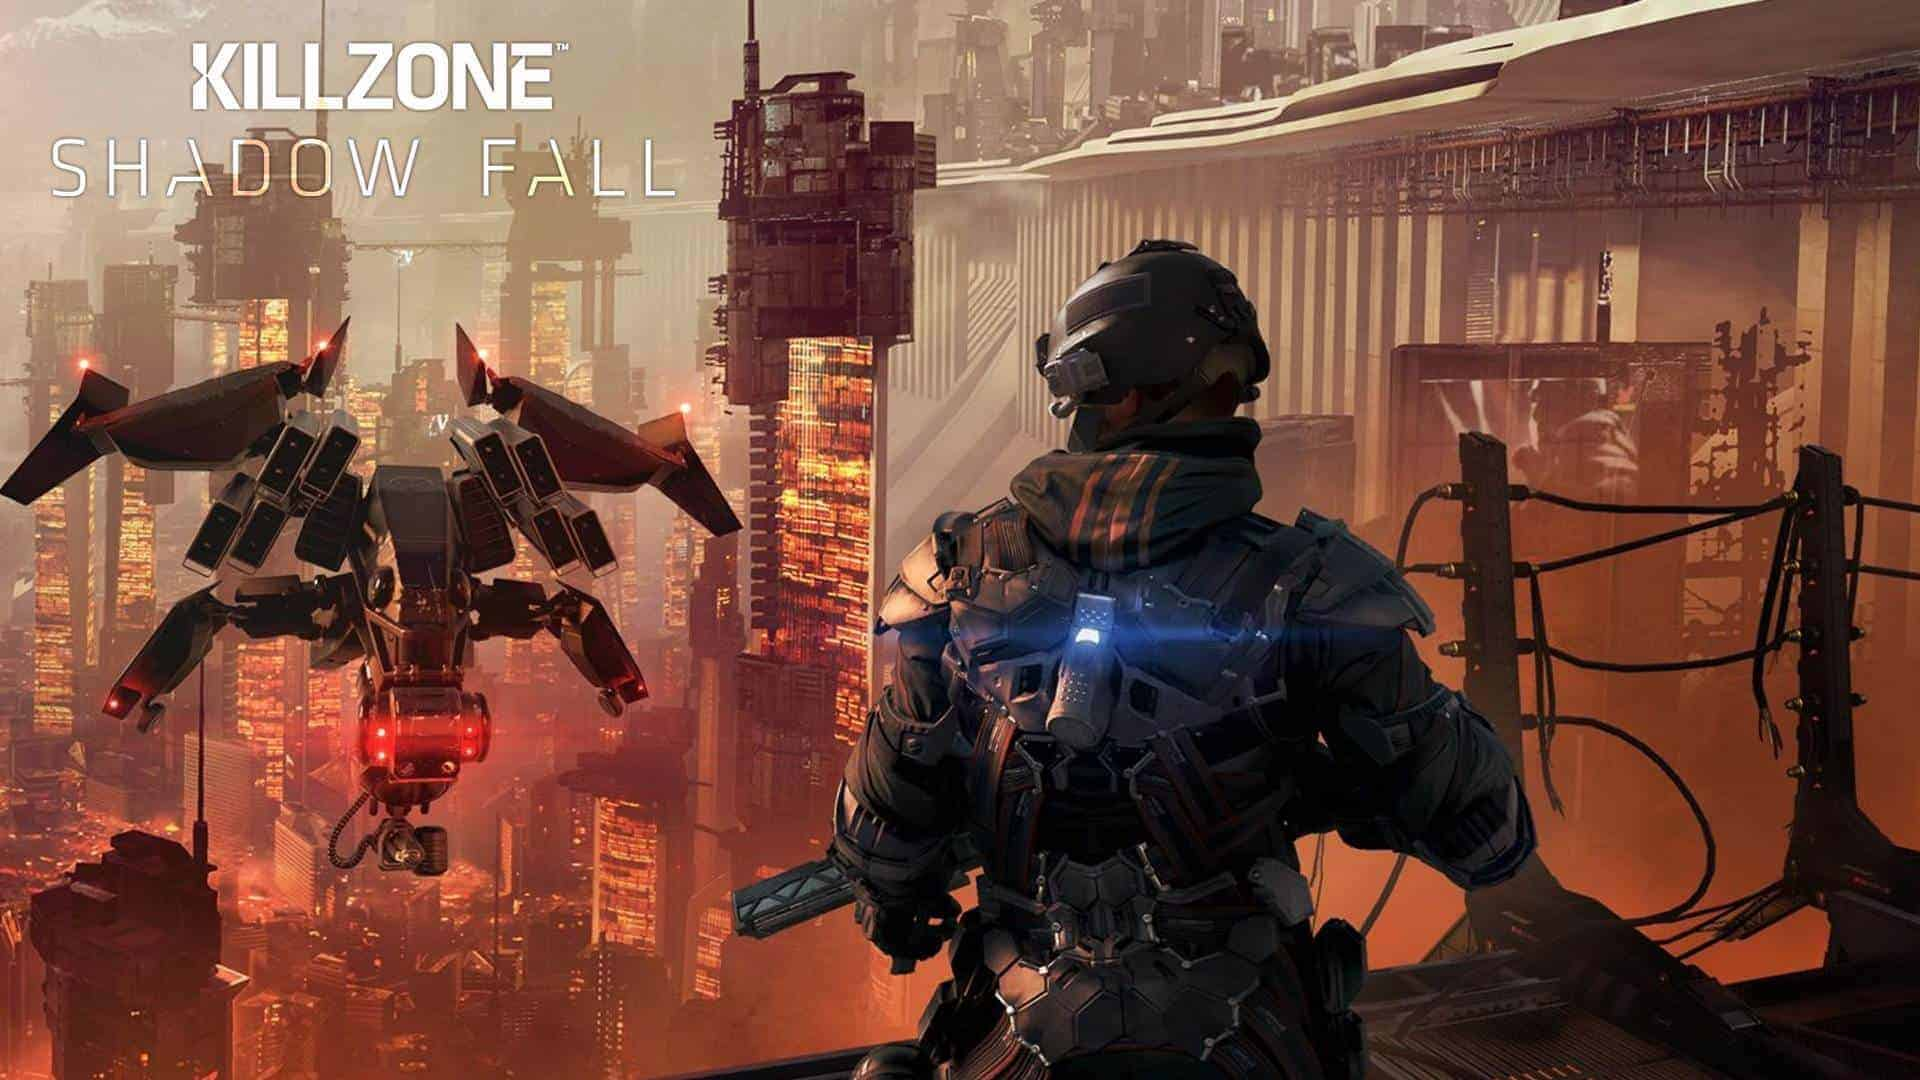 killzone-shadow-fall-ps4-wallpaper